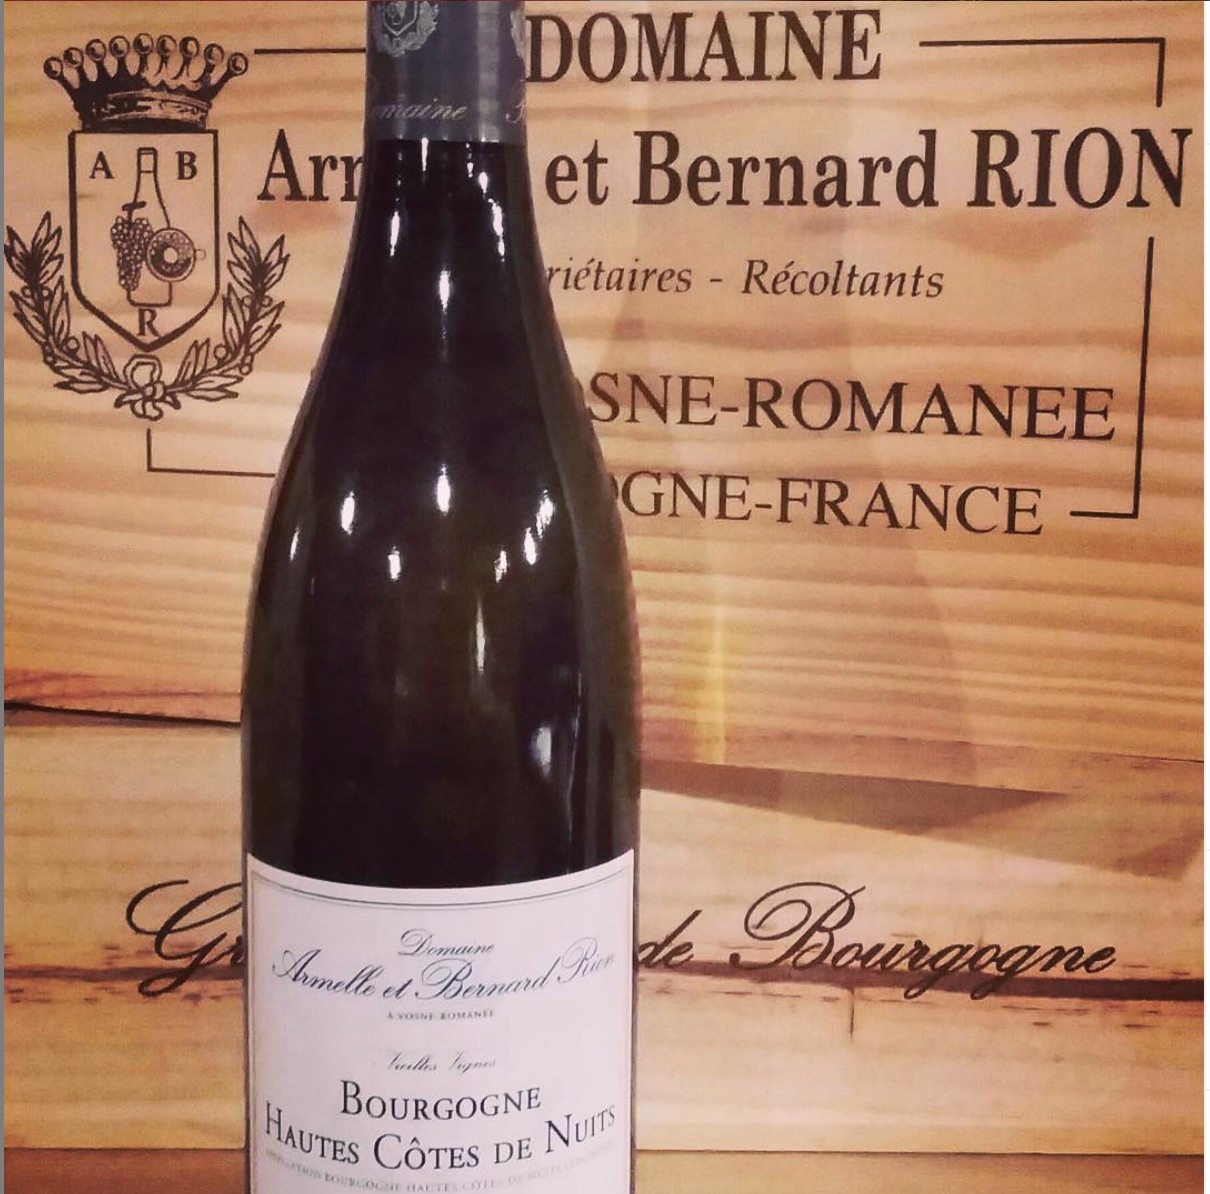 DOMAINE Armelle et Bernard RION - The vineyards are located in some of the most prestigious villages of the Cote de Nuits: Vosne-Romanée, Chambolle-Musigny, Nuits Saint Geroges and Vougeot.  Rion produces a fantastic range including appellations Coteaux Bourguignons, Village, 1st Cru and Grand Cru.